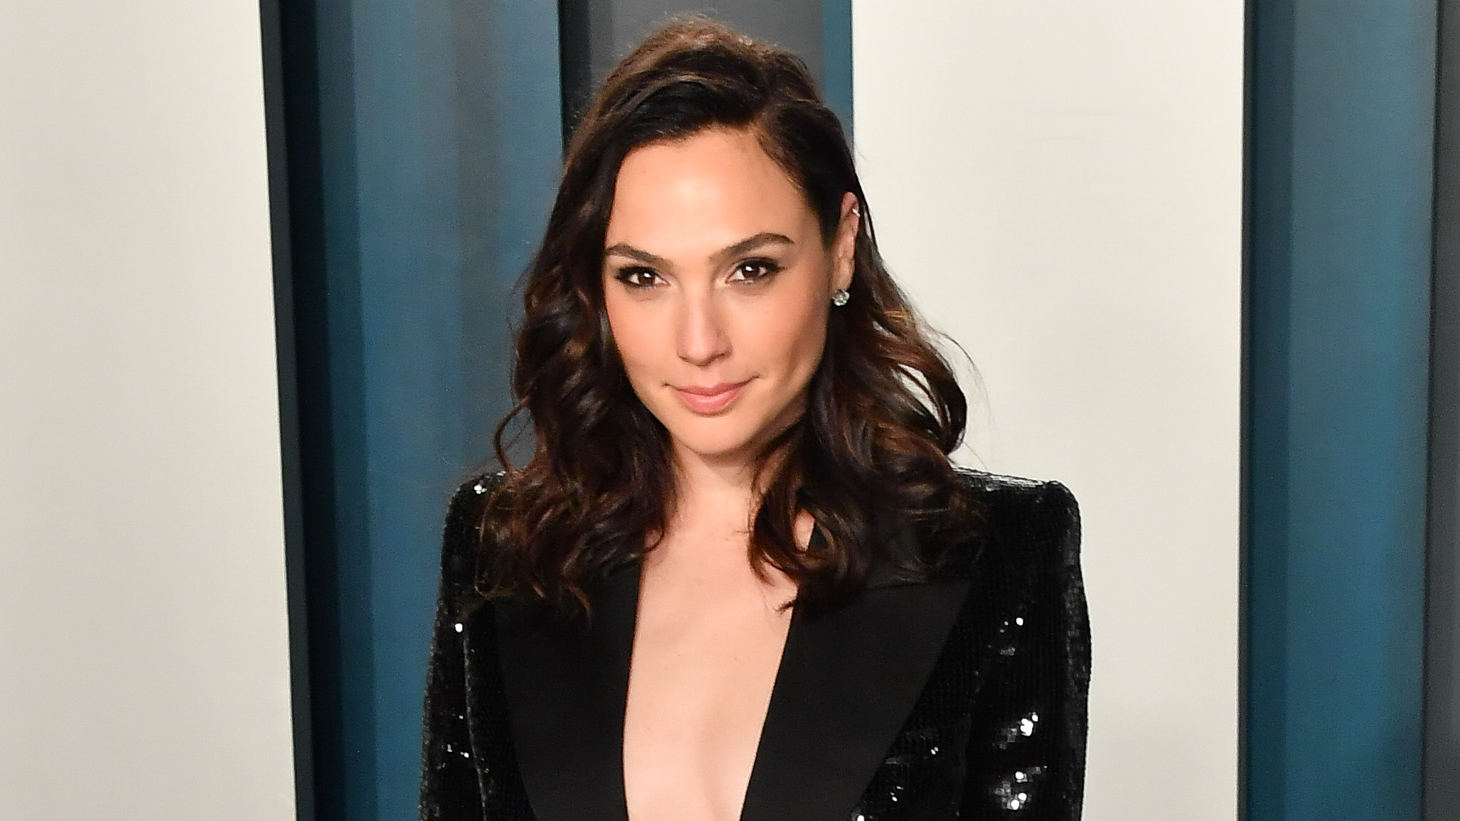 Gal Gadot addresses backlash to 'Imagine' video: 'I had nothing but good intentions' – Fox News